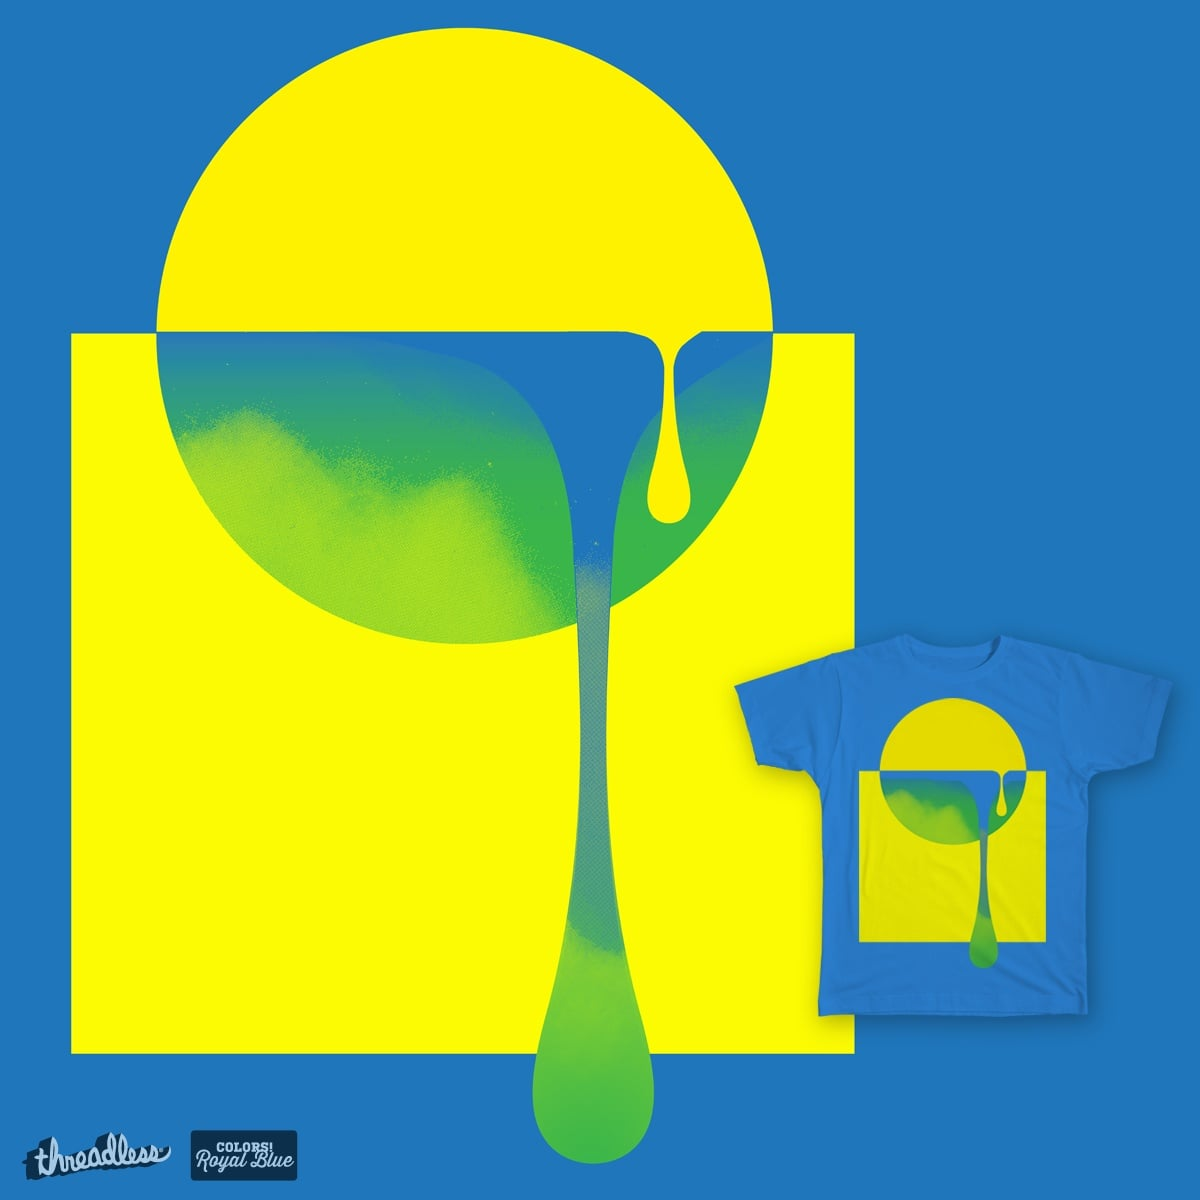 color drip theory by campkatie on Threadless